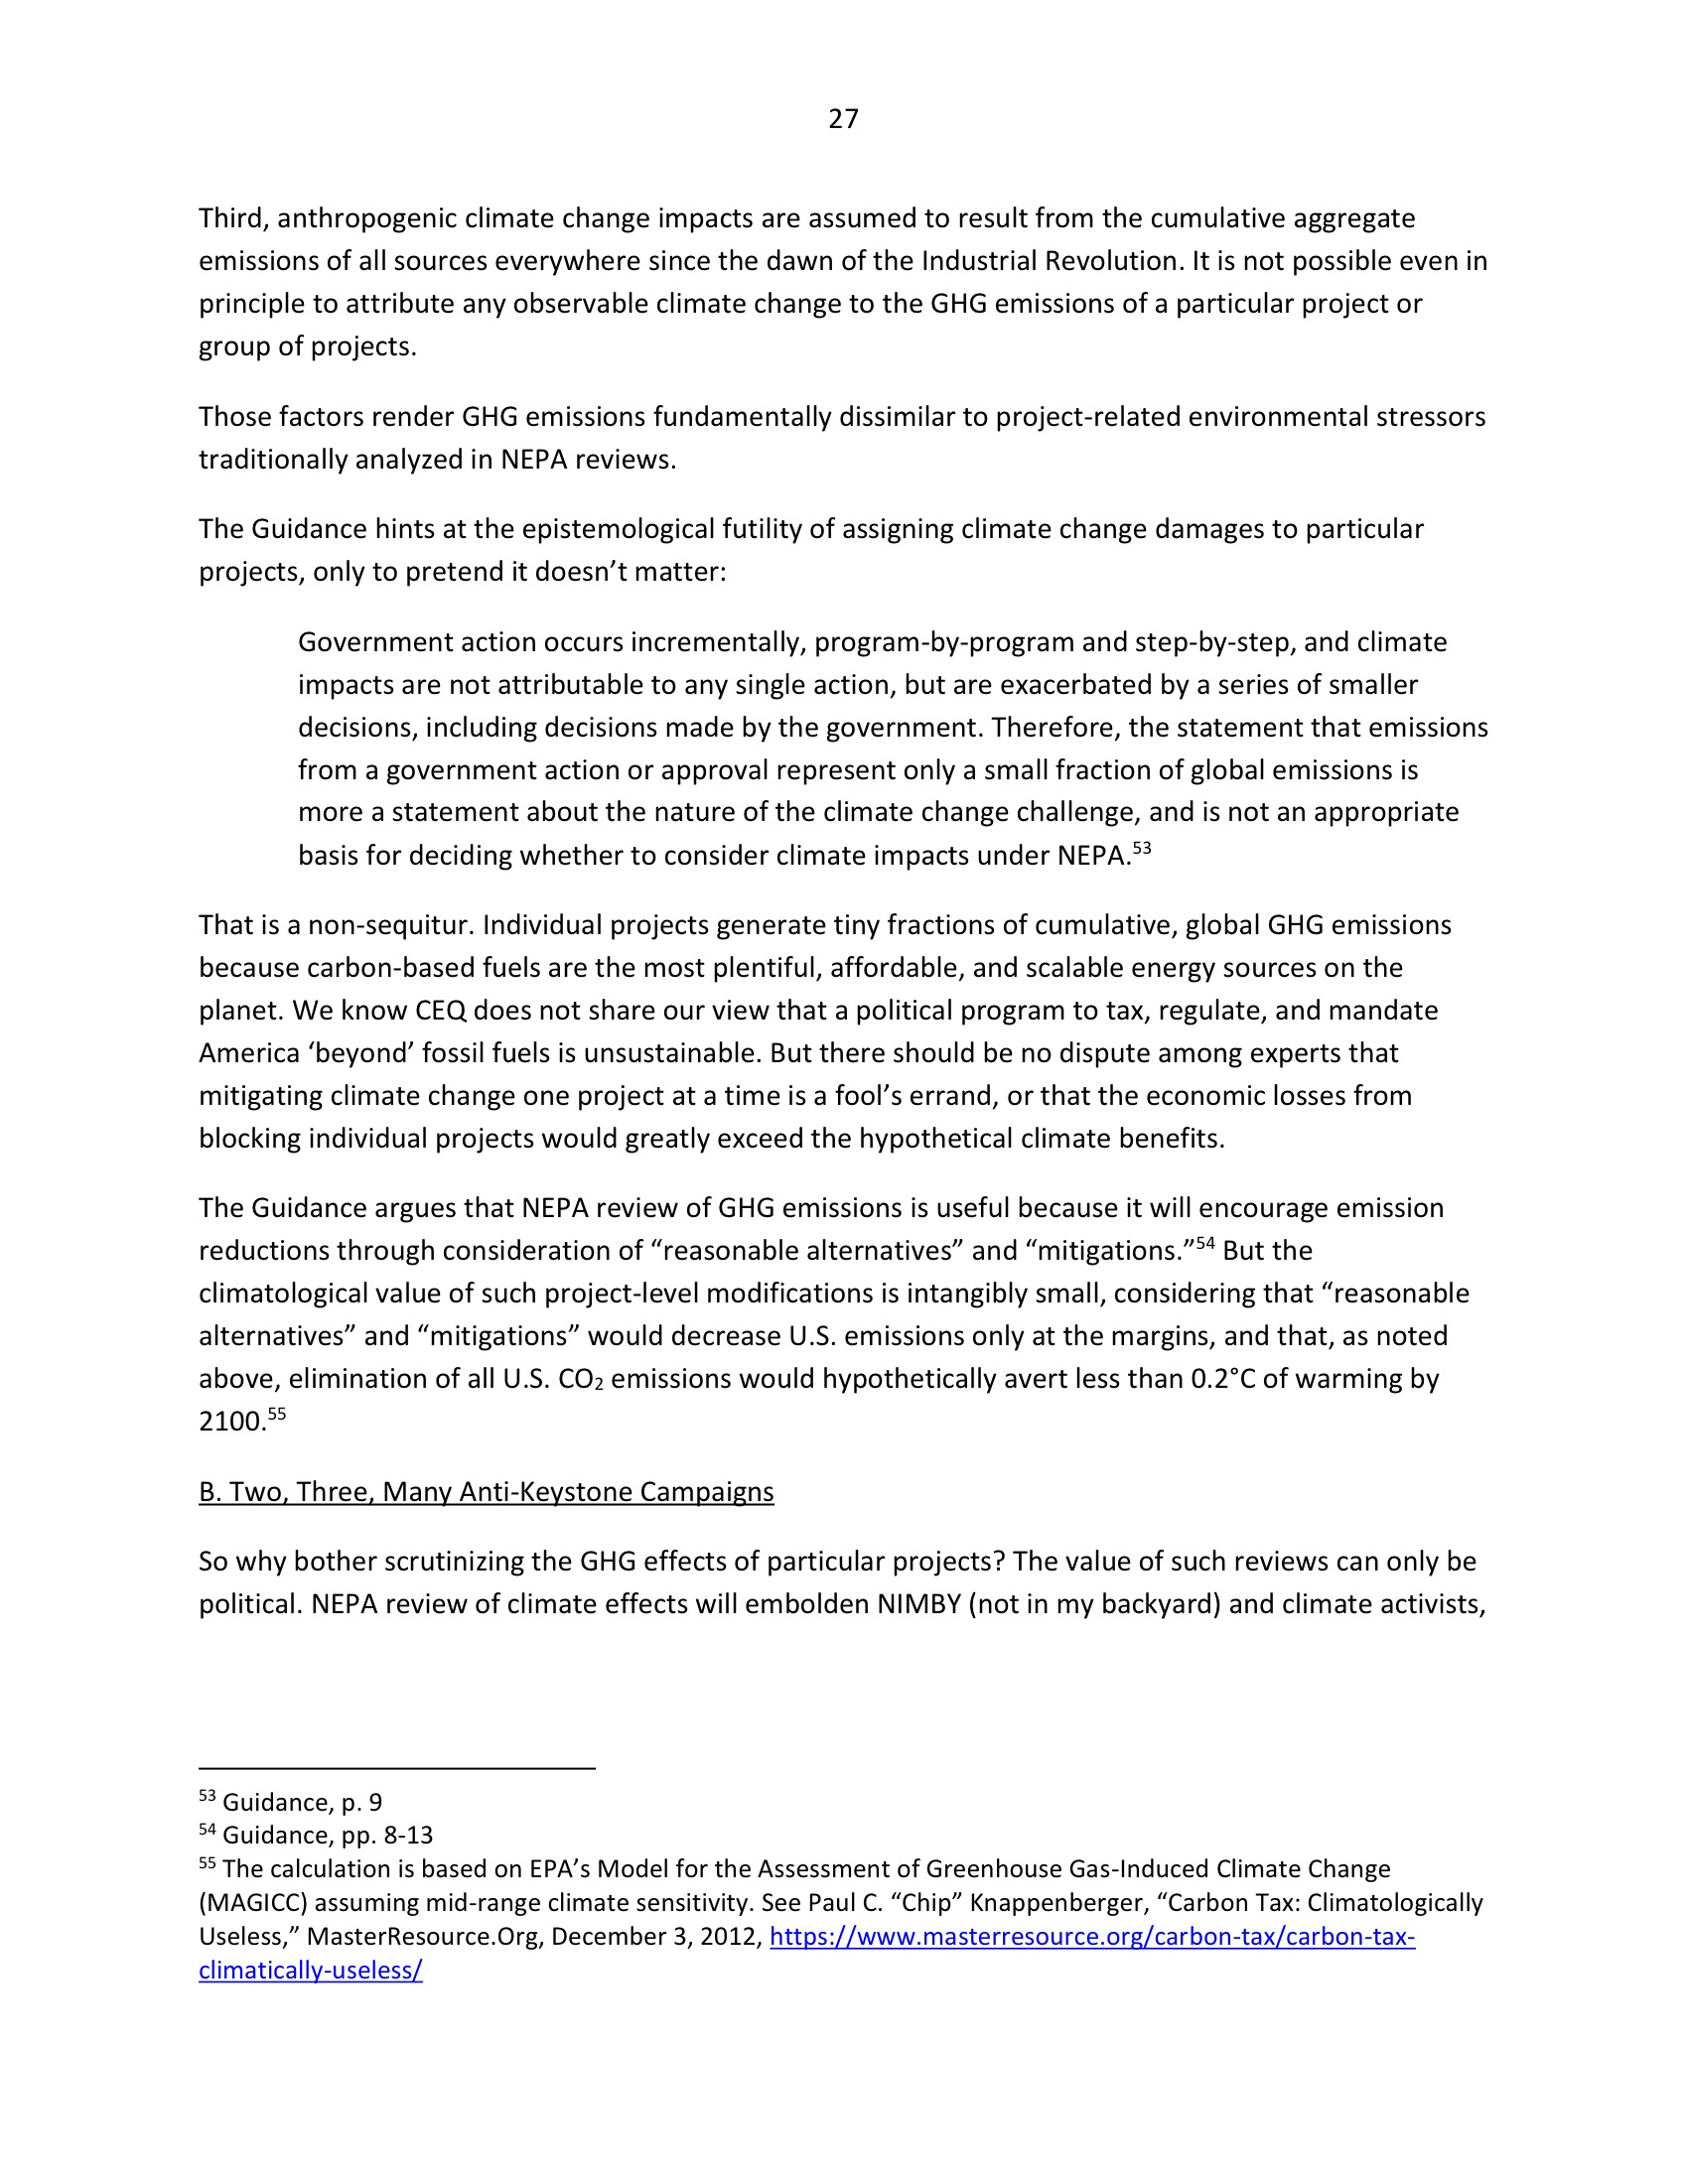 Marlo Lewis Competitive Enterprise Institute and Free Market Allies Comment Letter on NEPA GHG Guidance Document 99-27